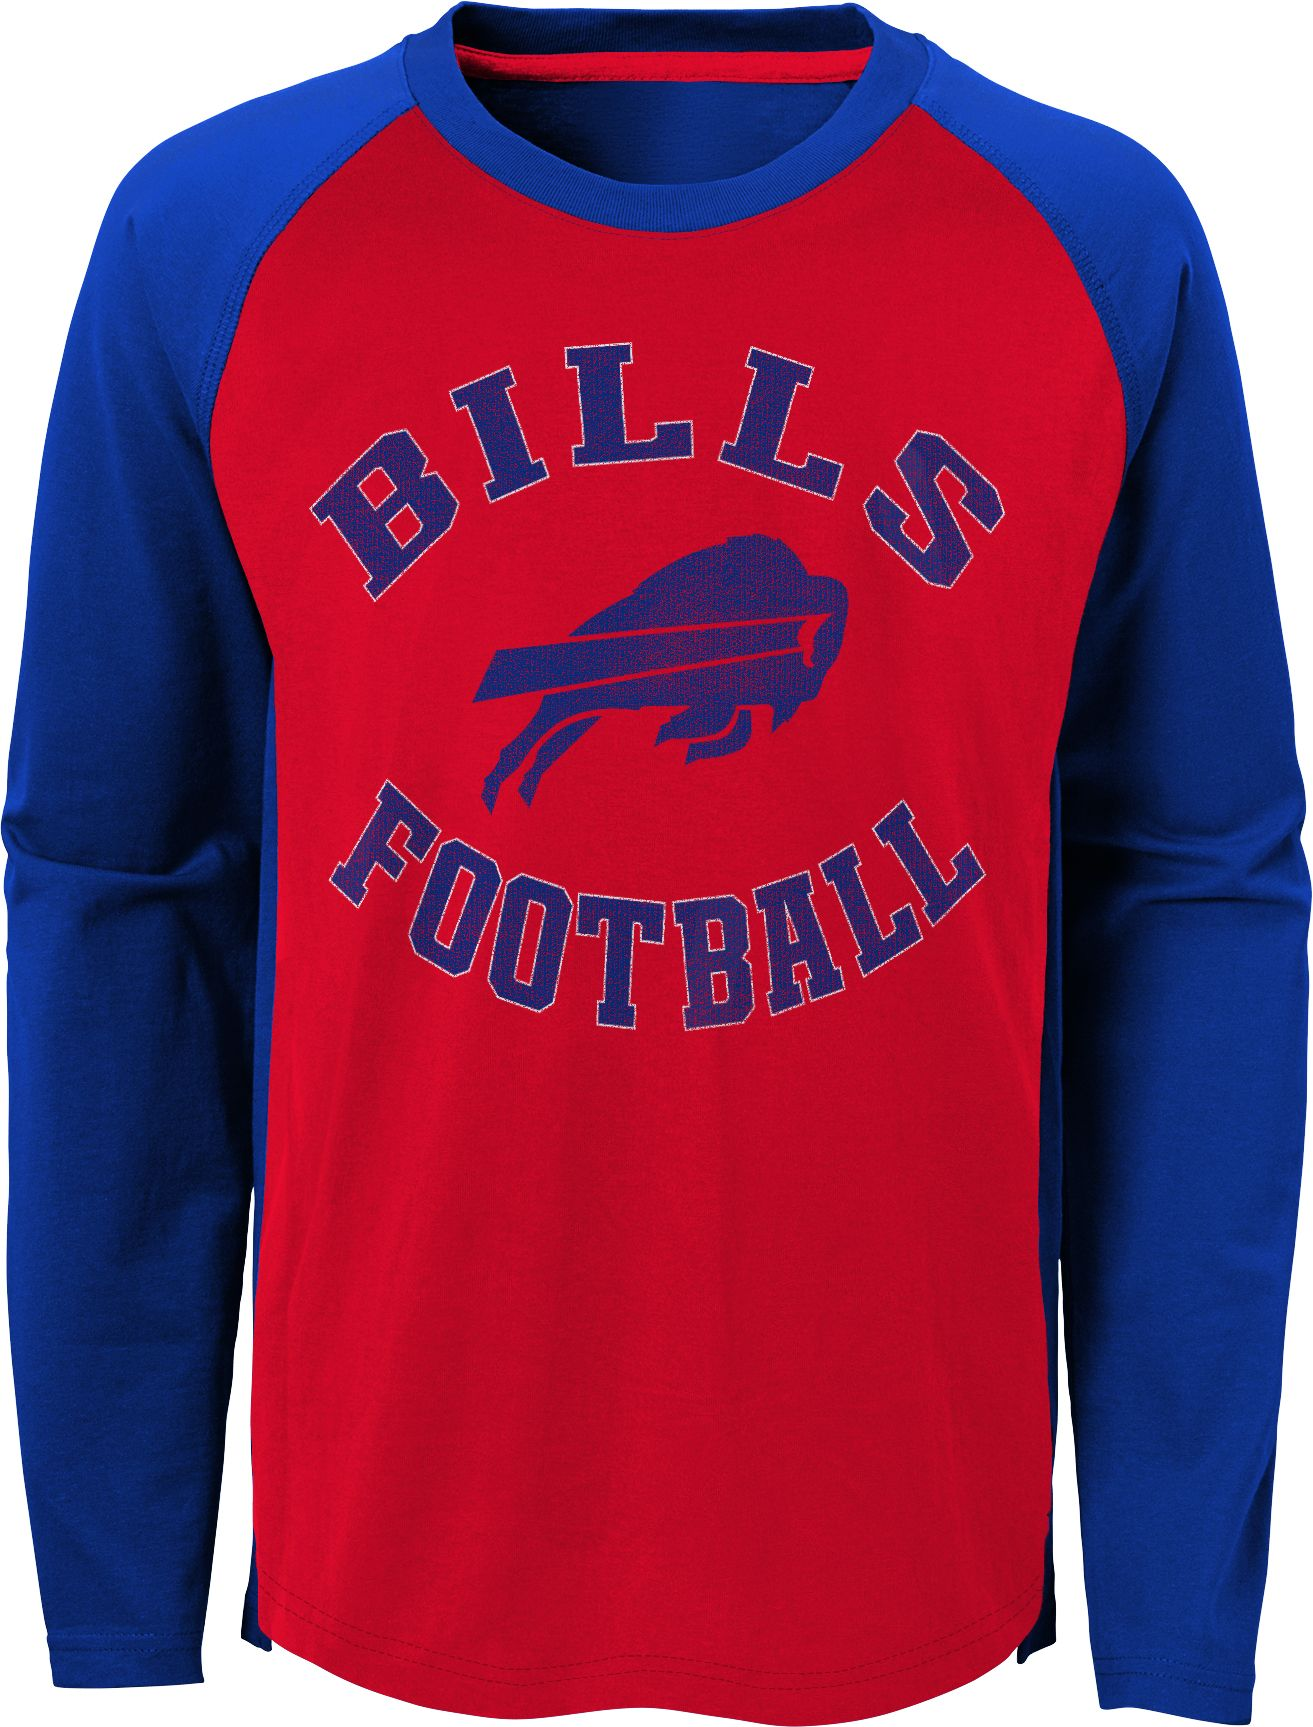 Buffalo Bills Air Raid Long Sleeve